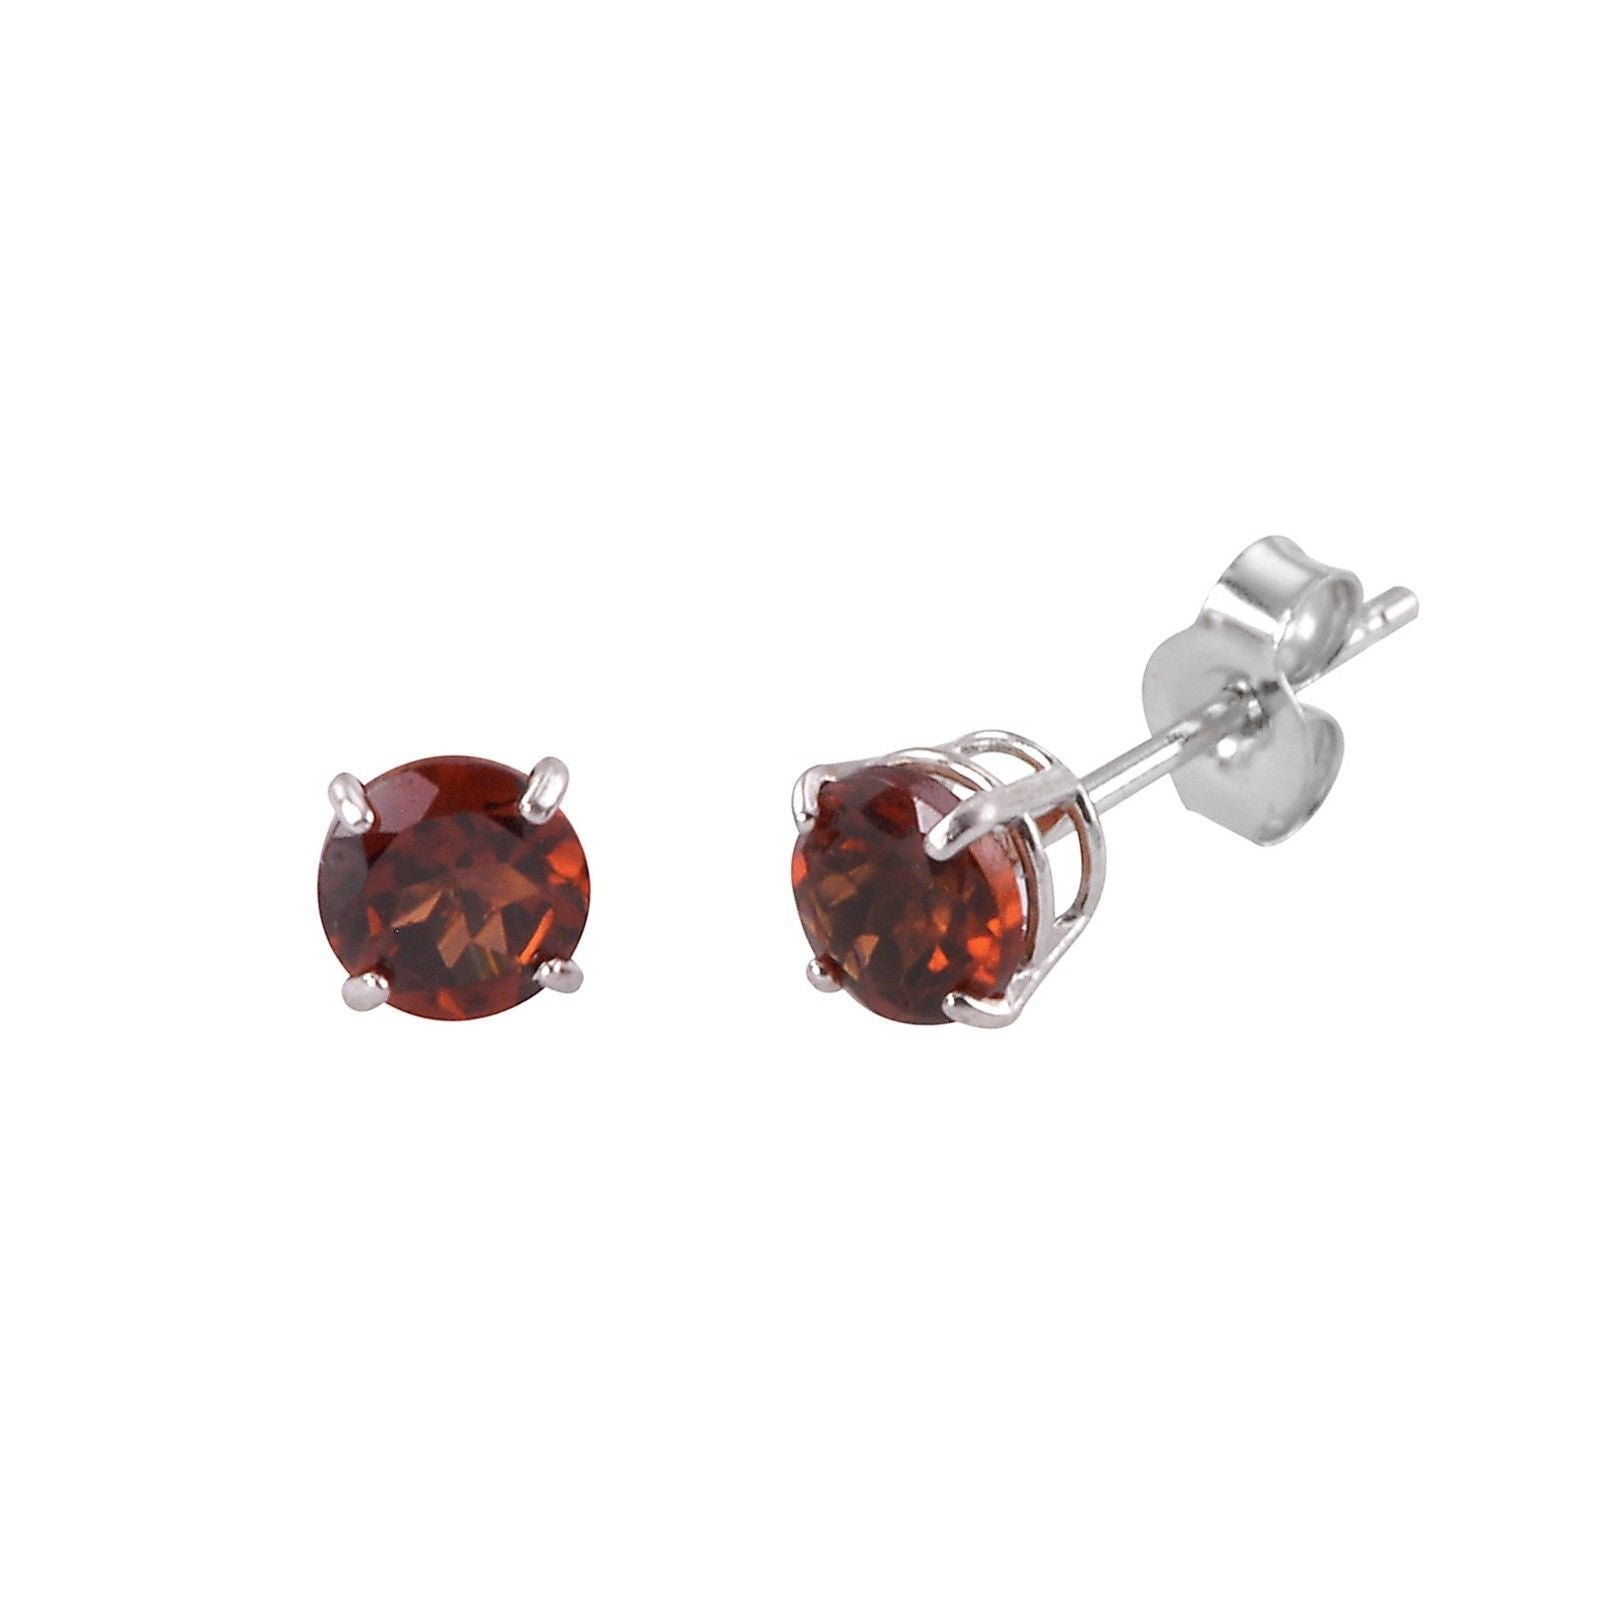 Garnet Earrings 14k White Gold January Birthstone Studs  Genuine Gemstone